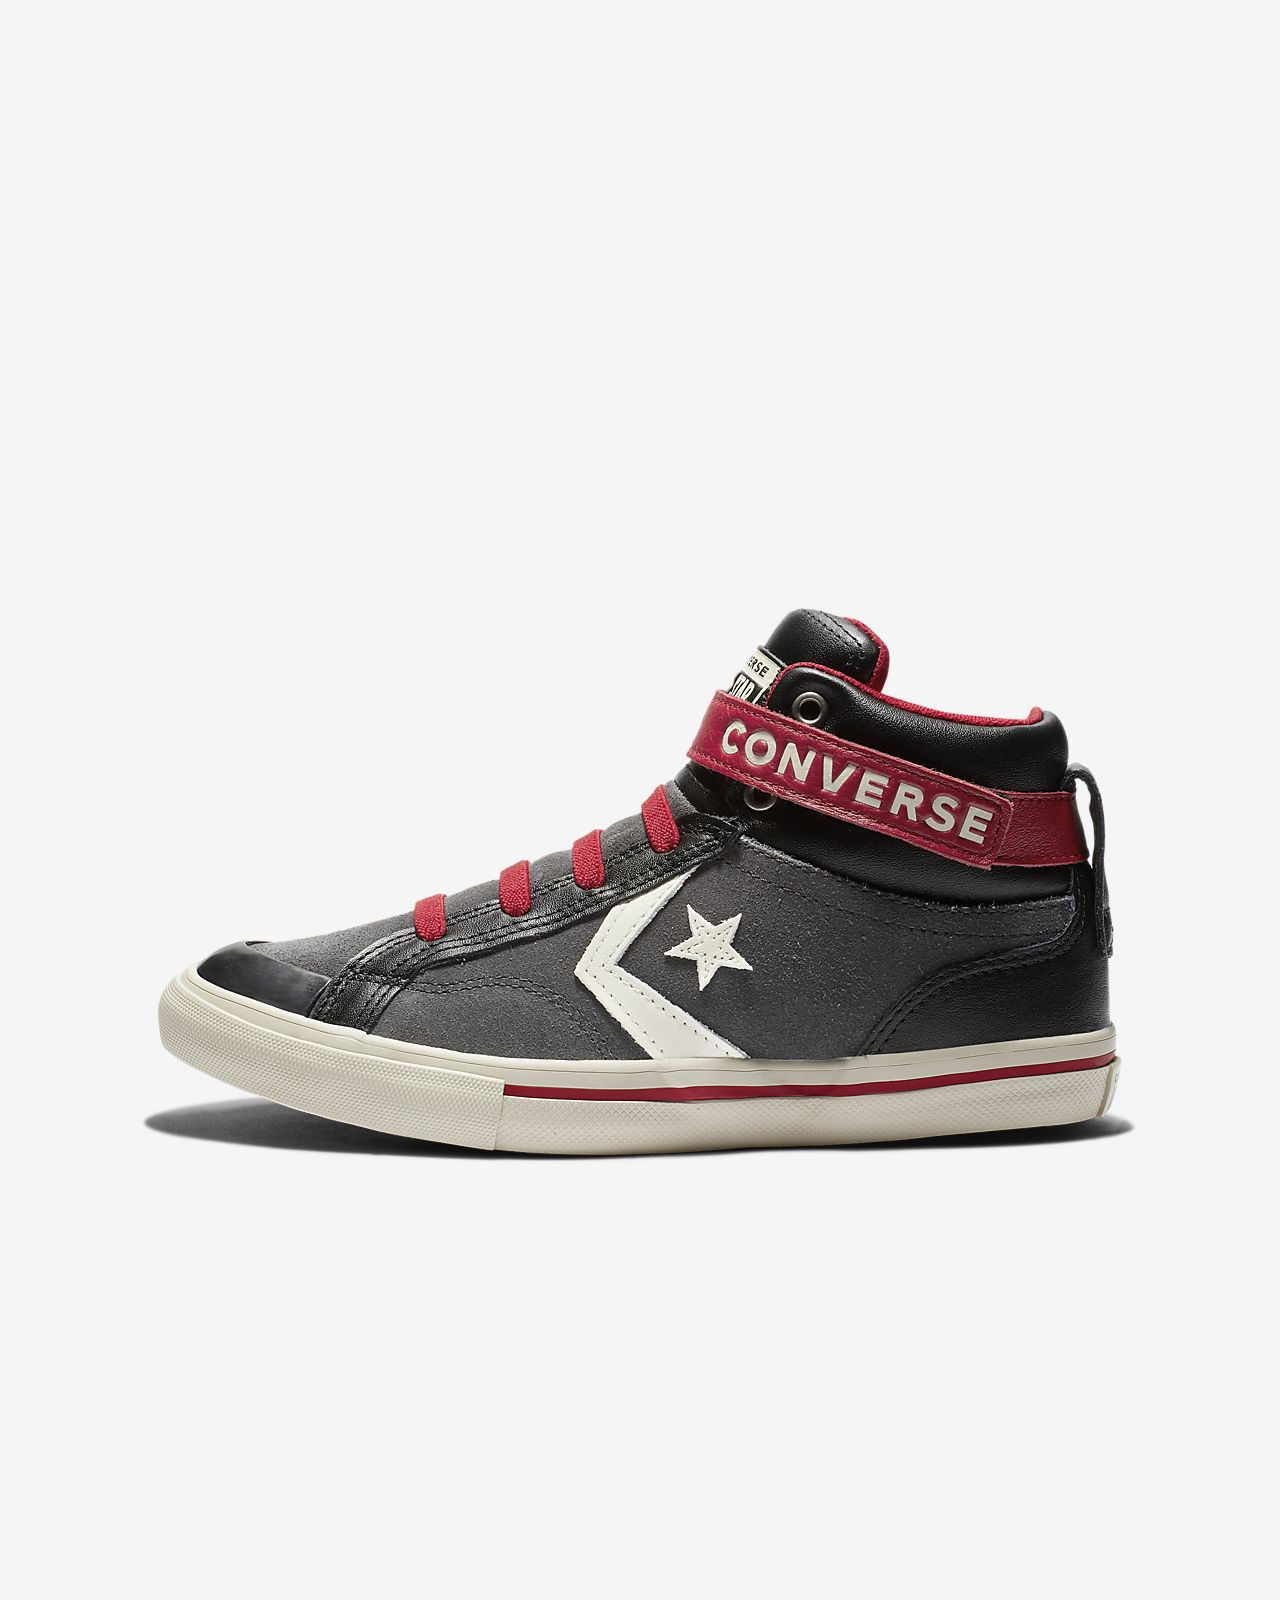 Converse Pro Blaze Strap High Top Big Kids' Shoe